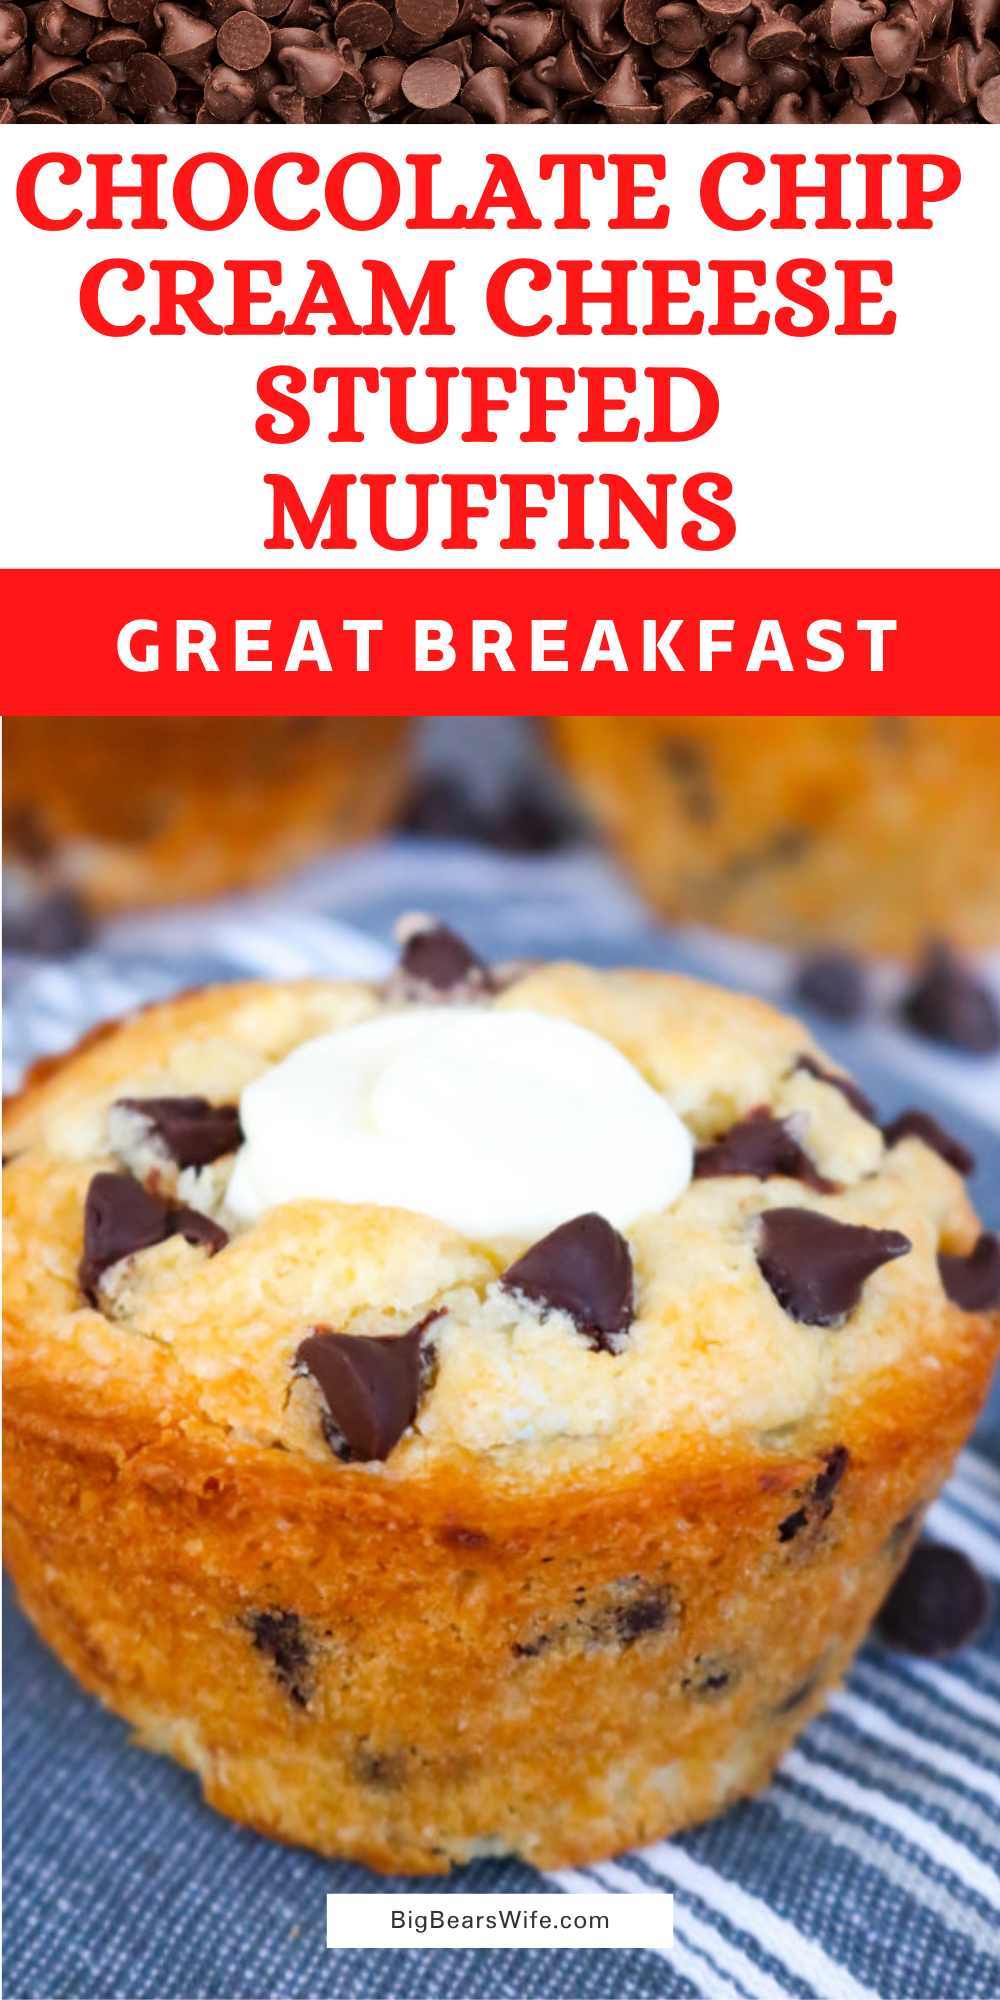 These Chocolate Chip Cream Cheese Stuffed Muffins are huge, fluffy, packed with chocolate chips and filled with a super easy cream cheese filling! via @bigbearswife